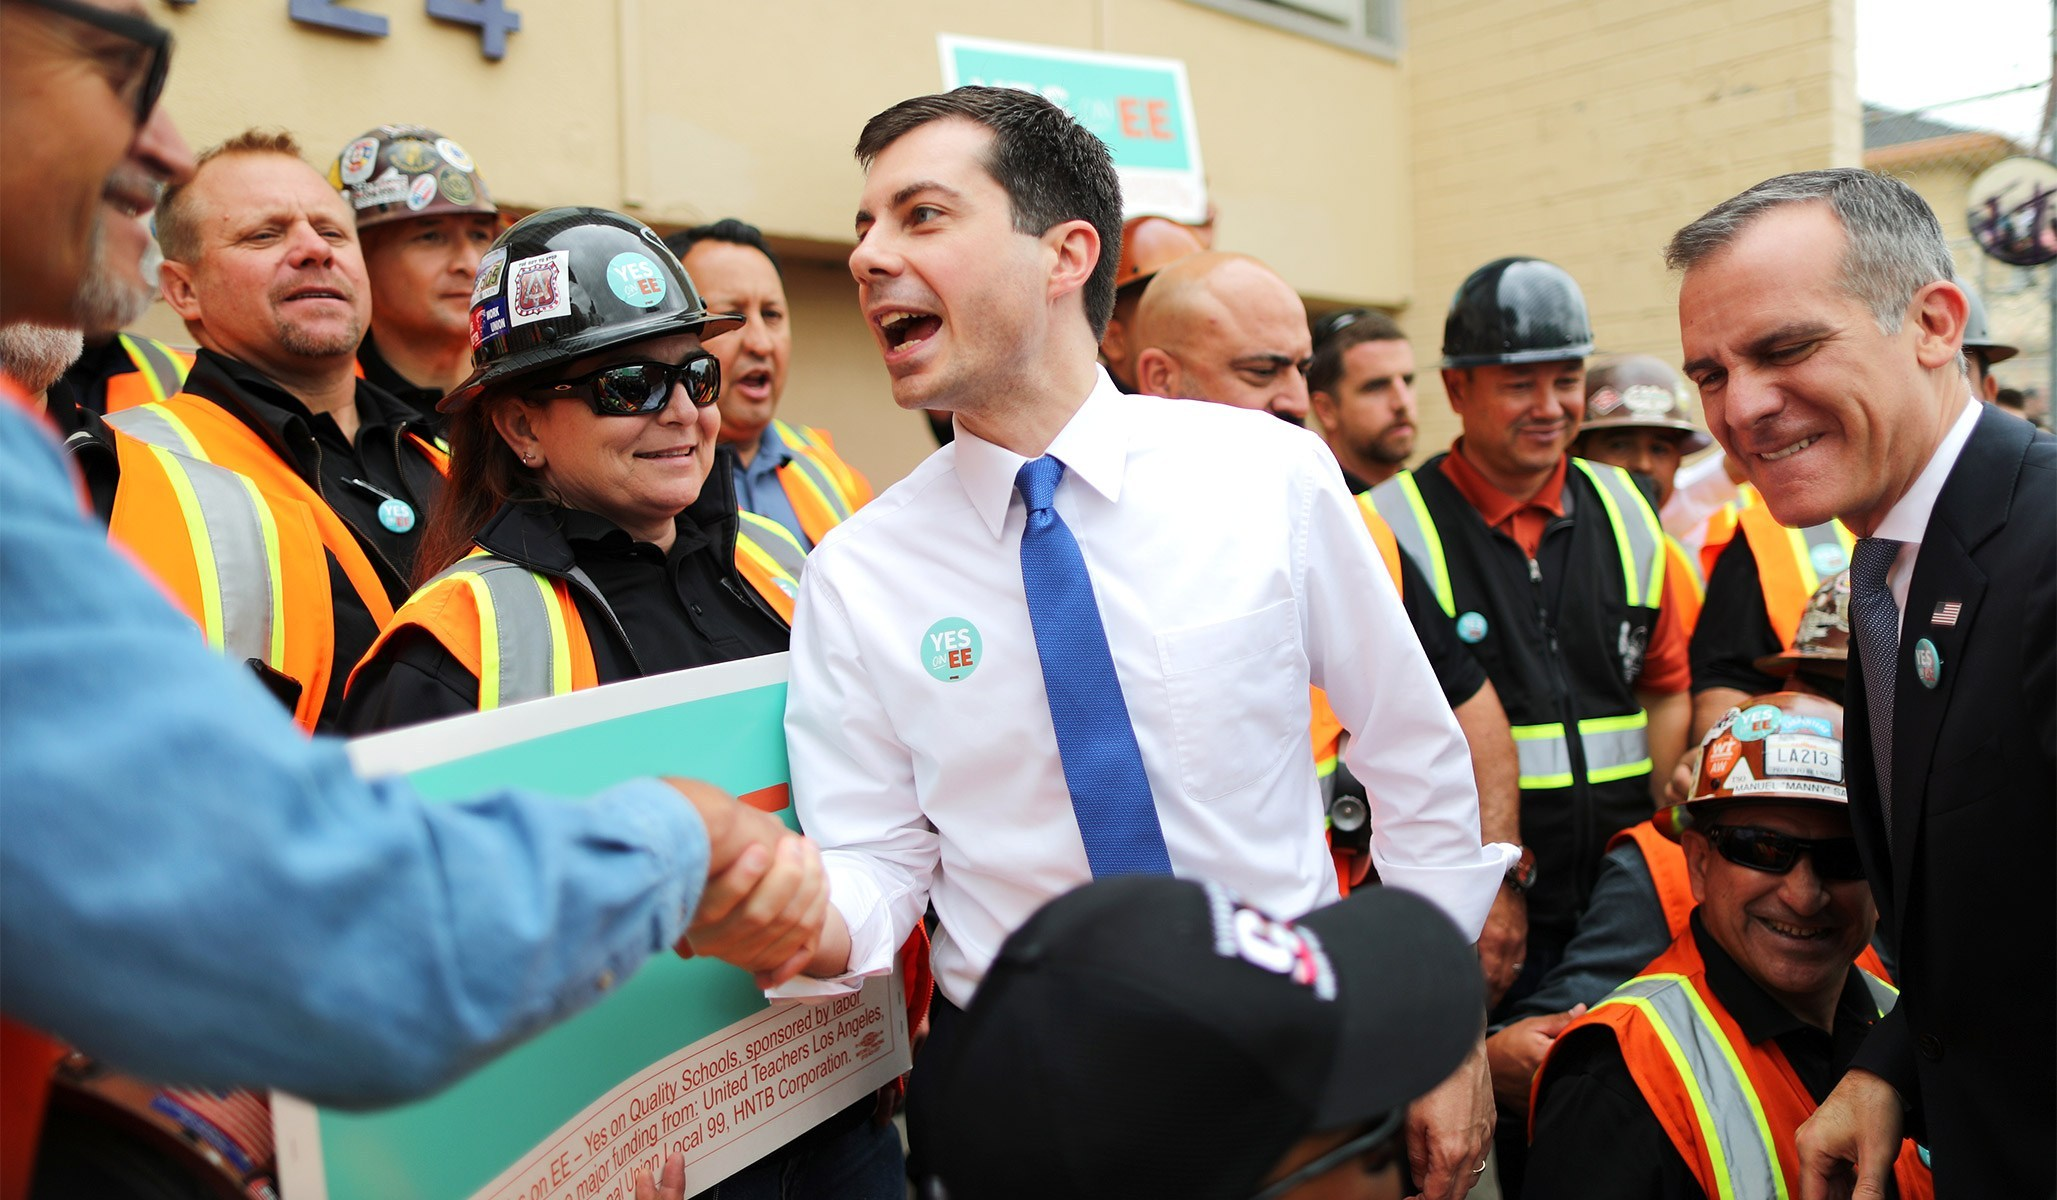 Presidential Hopeful Pete Buttigieg to Make Campaign Stop in Bloomington Next Week